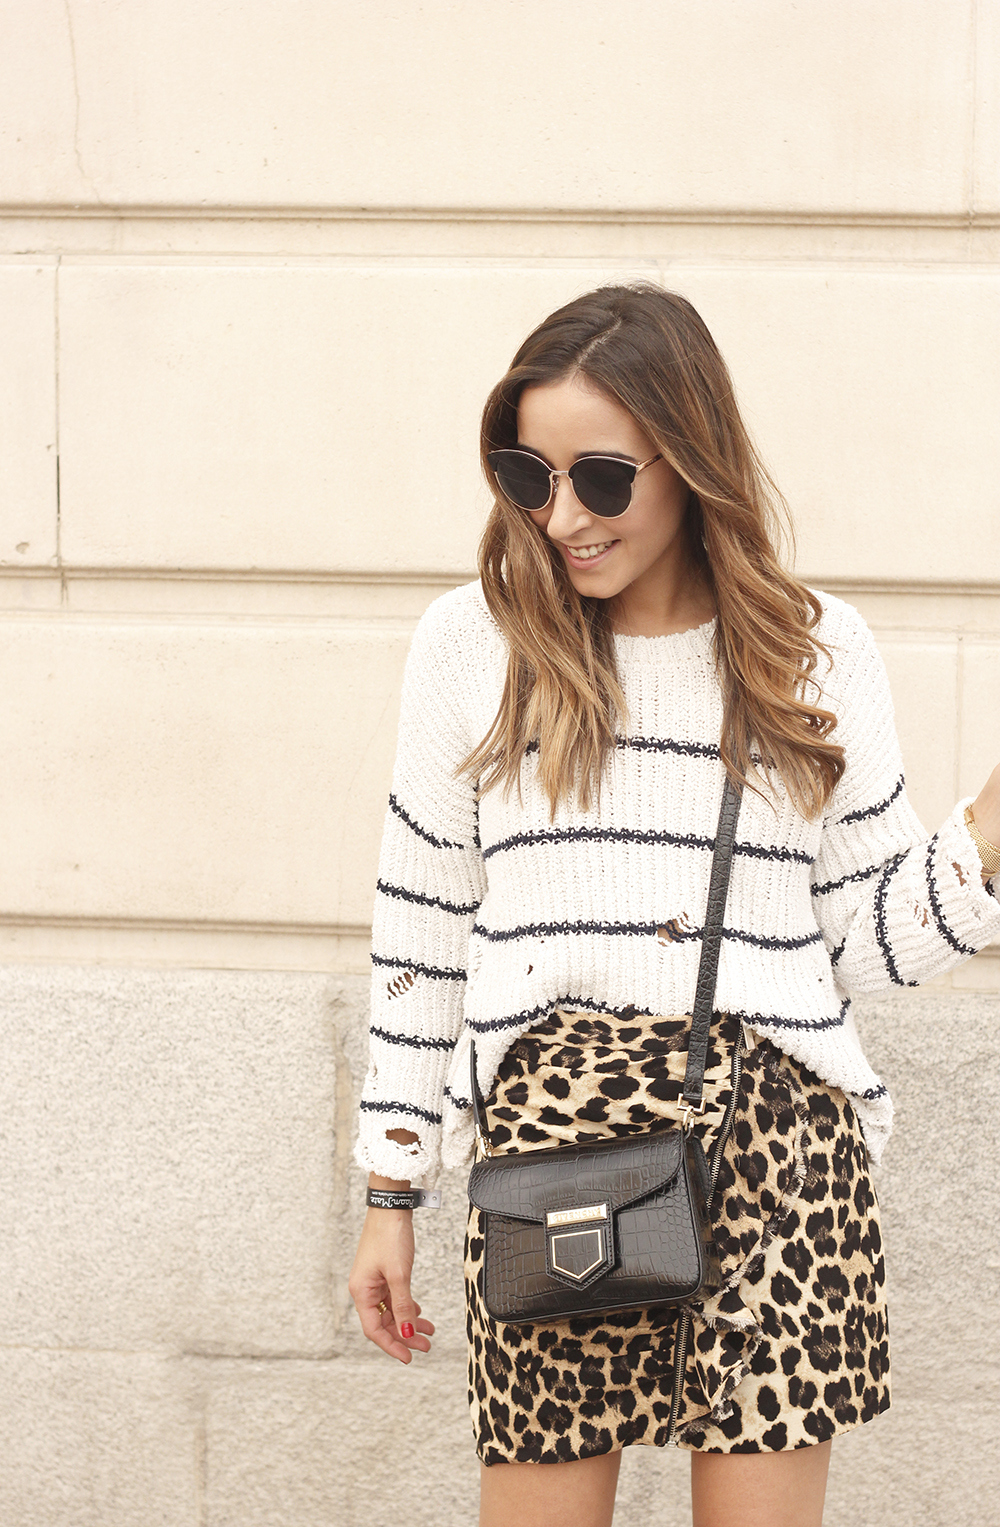 leopard printed skirt striped sweater givenchy bag outfit fashion style trend16